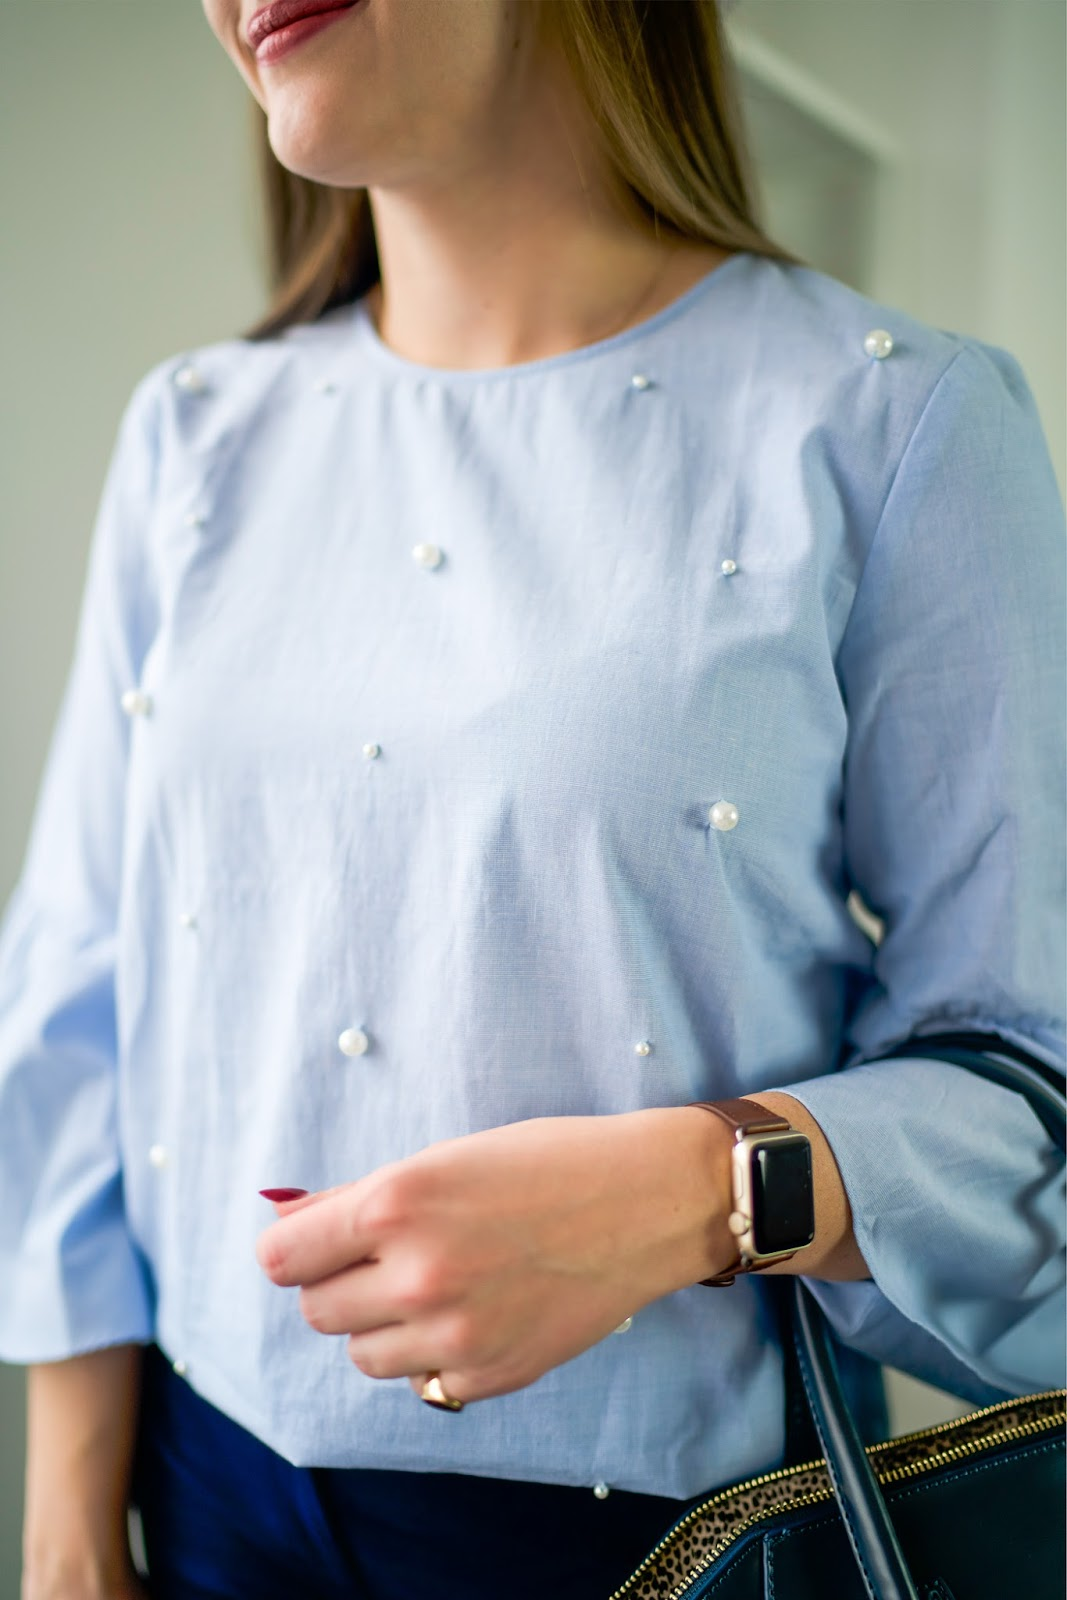 Affordable Clothing for Work Look by popular New York fashion blogger Covering the Bases